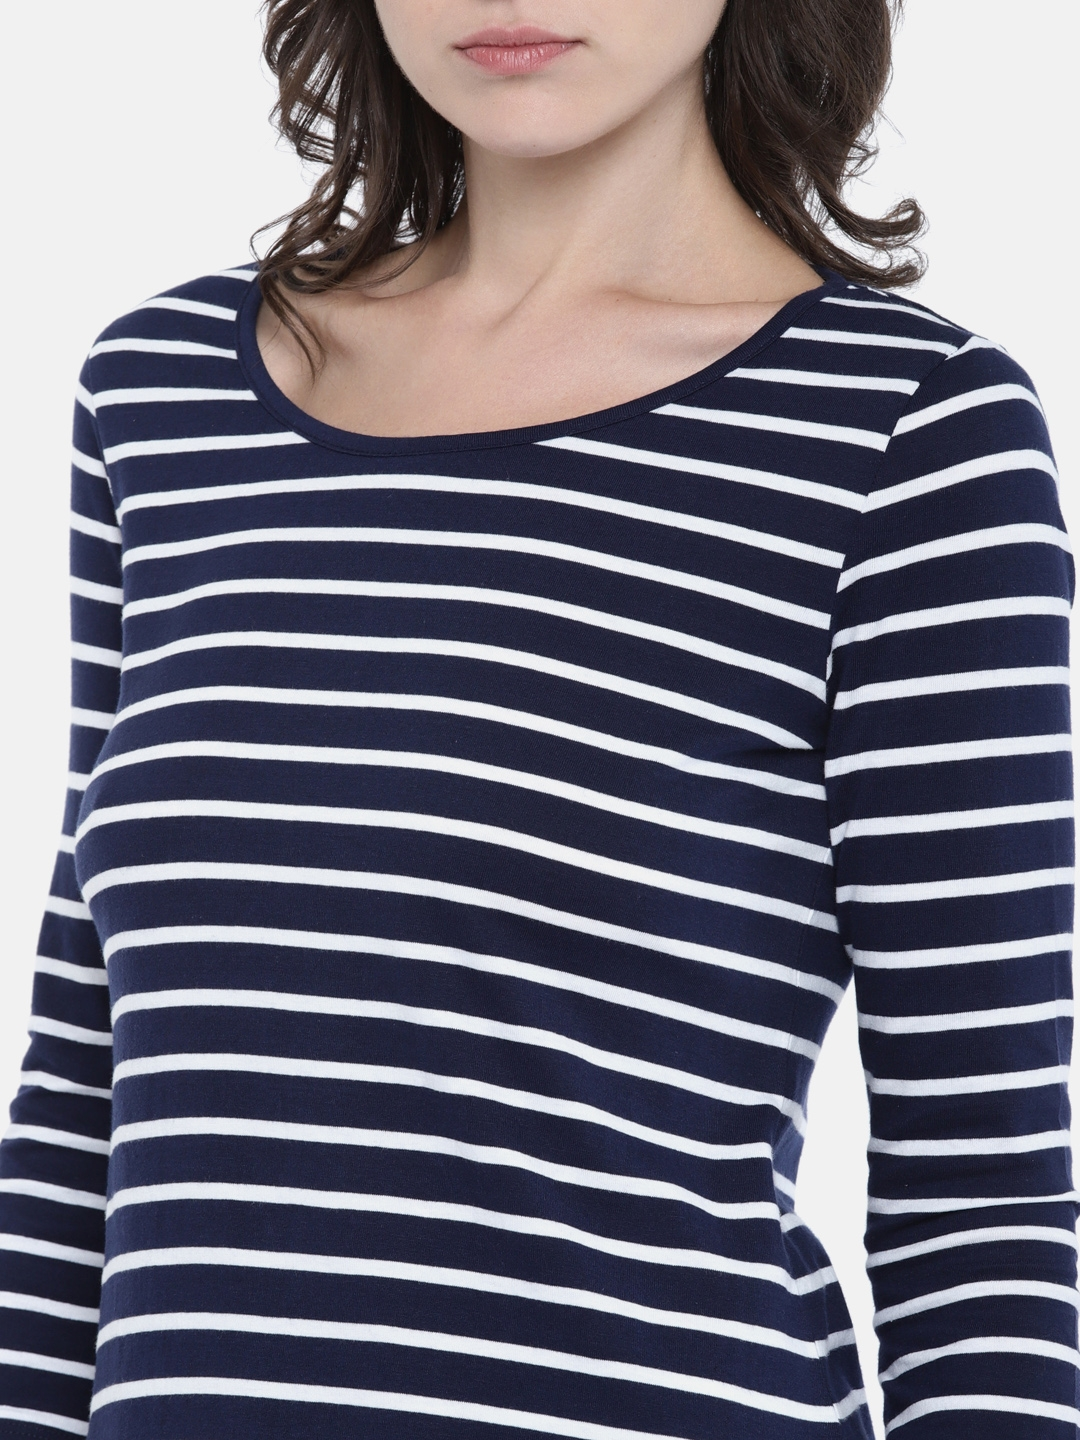 9ff29c71f5b32f Buy Fame Forever By Lifestyle Women Navy & White Striped Top - Tops ...